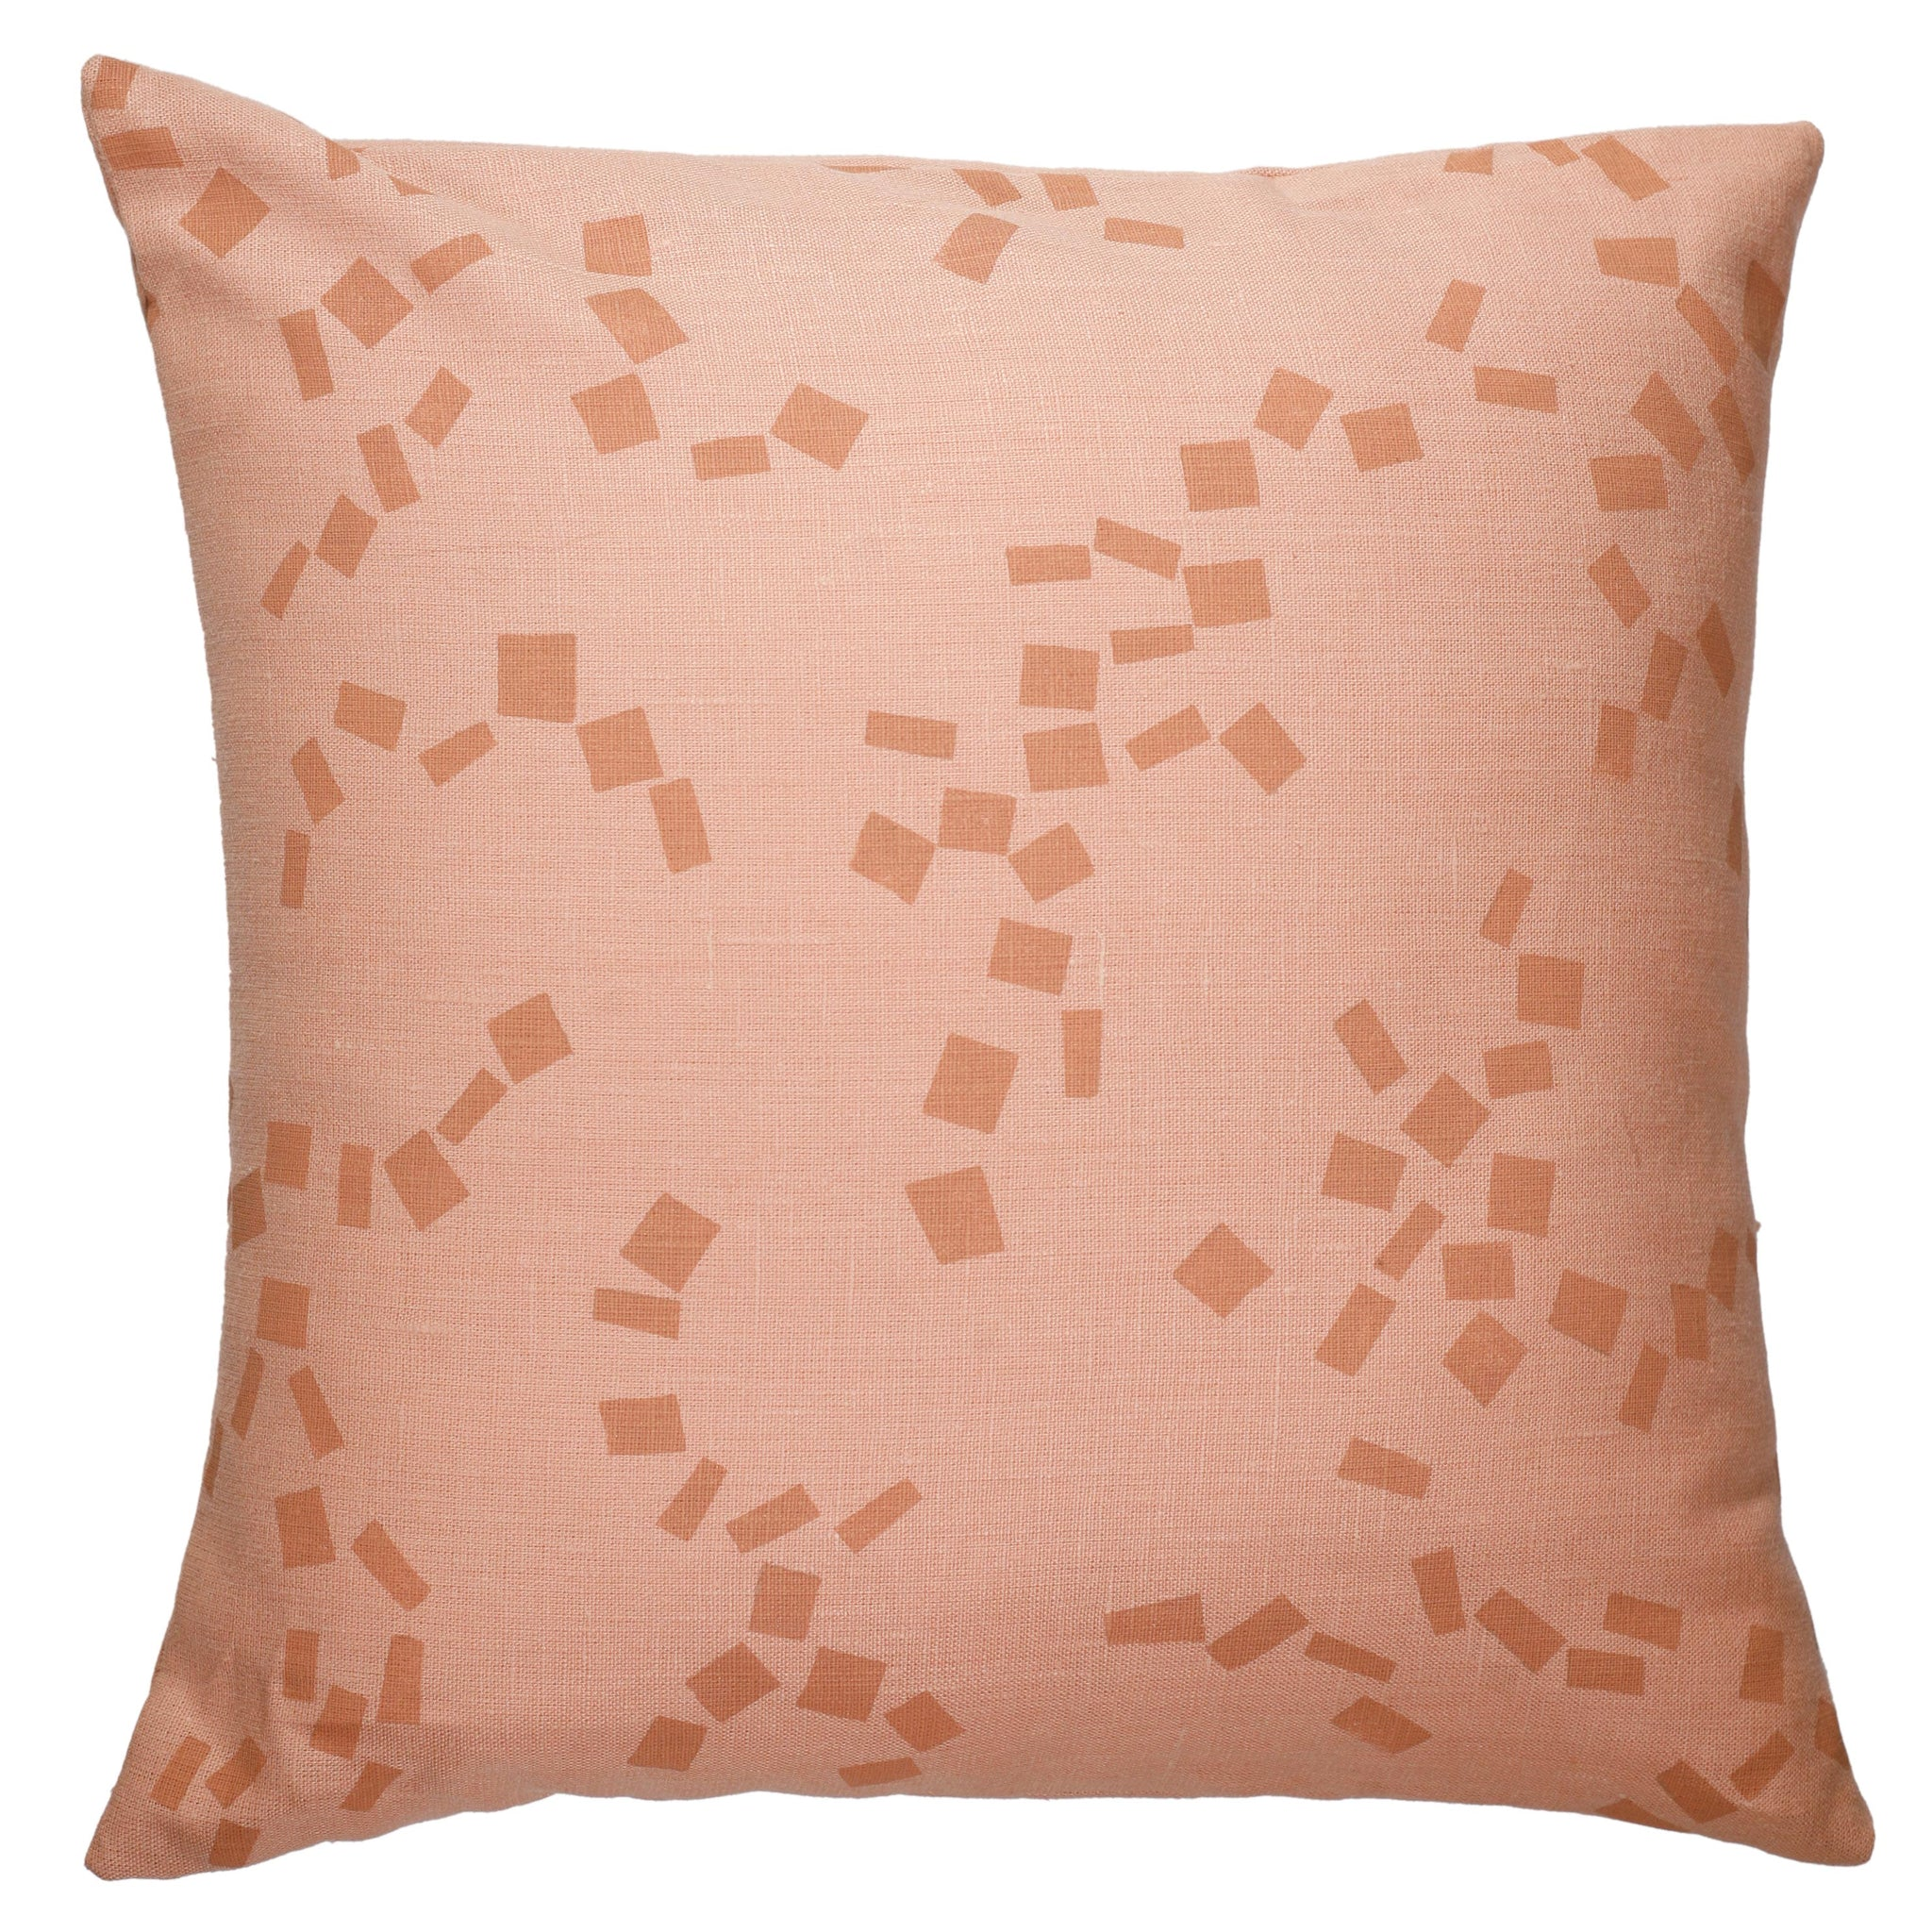 'Figures' Pillow Cover - Square